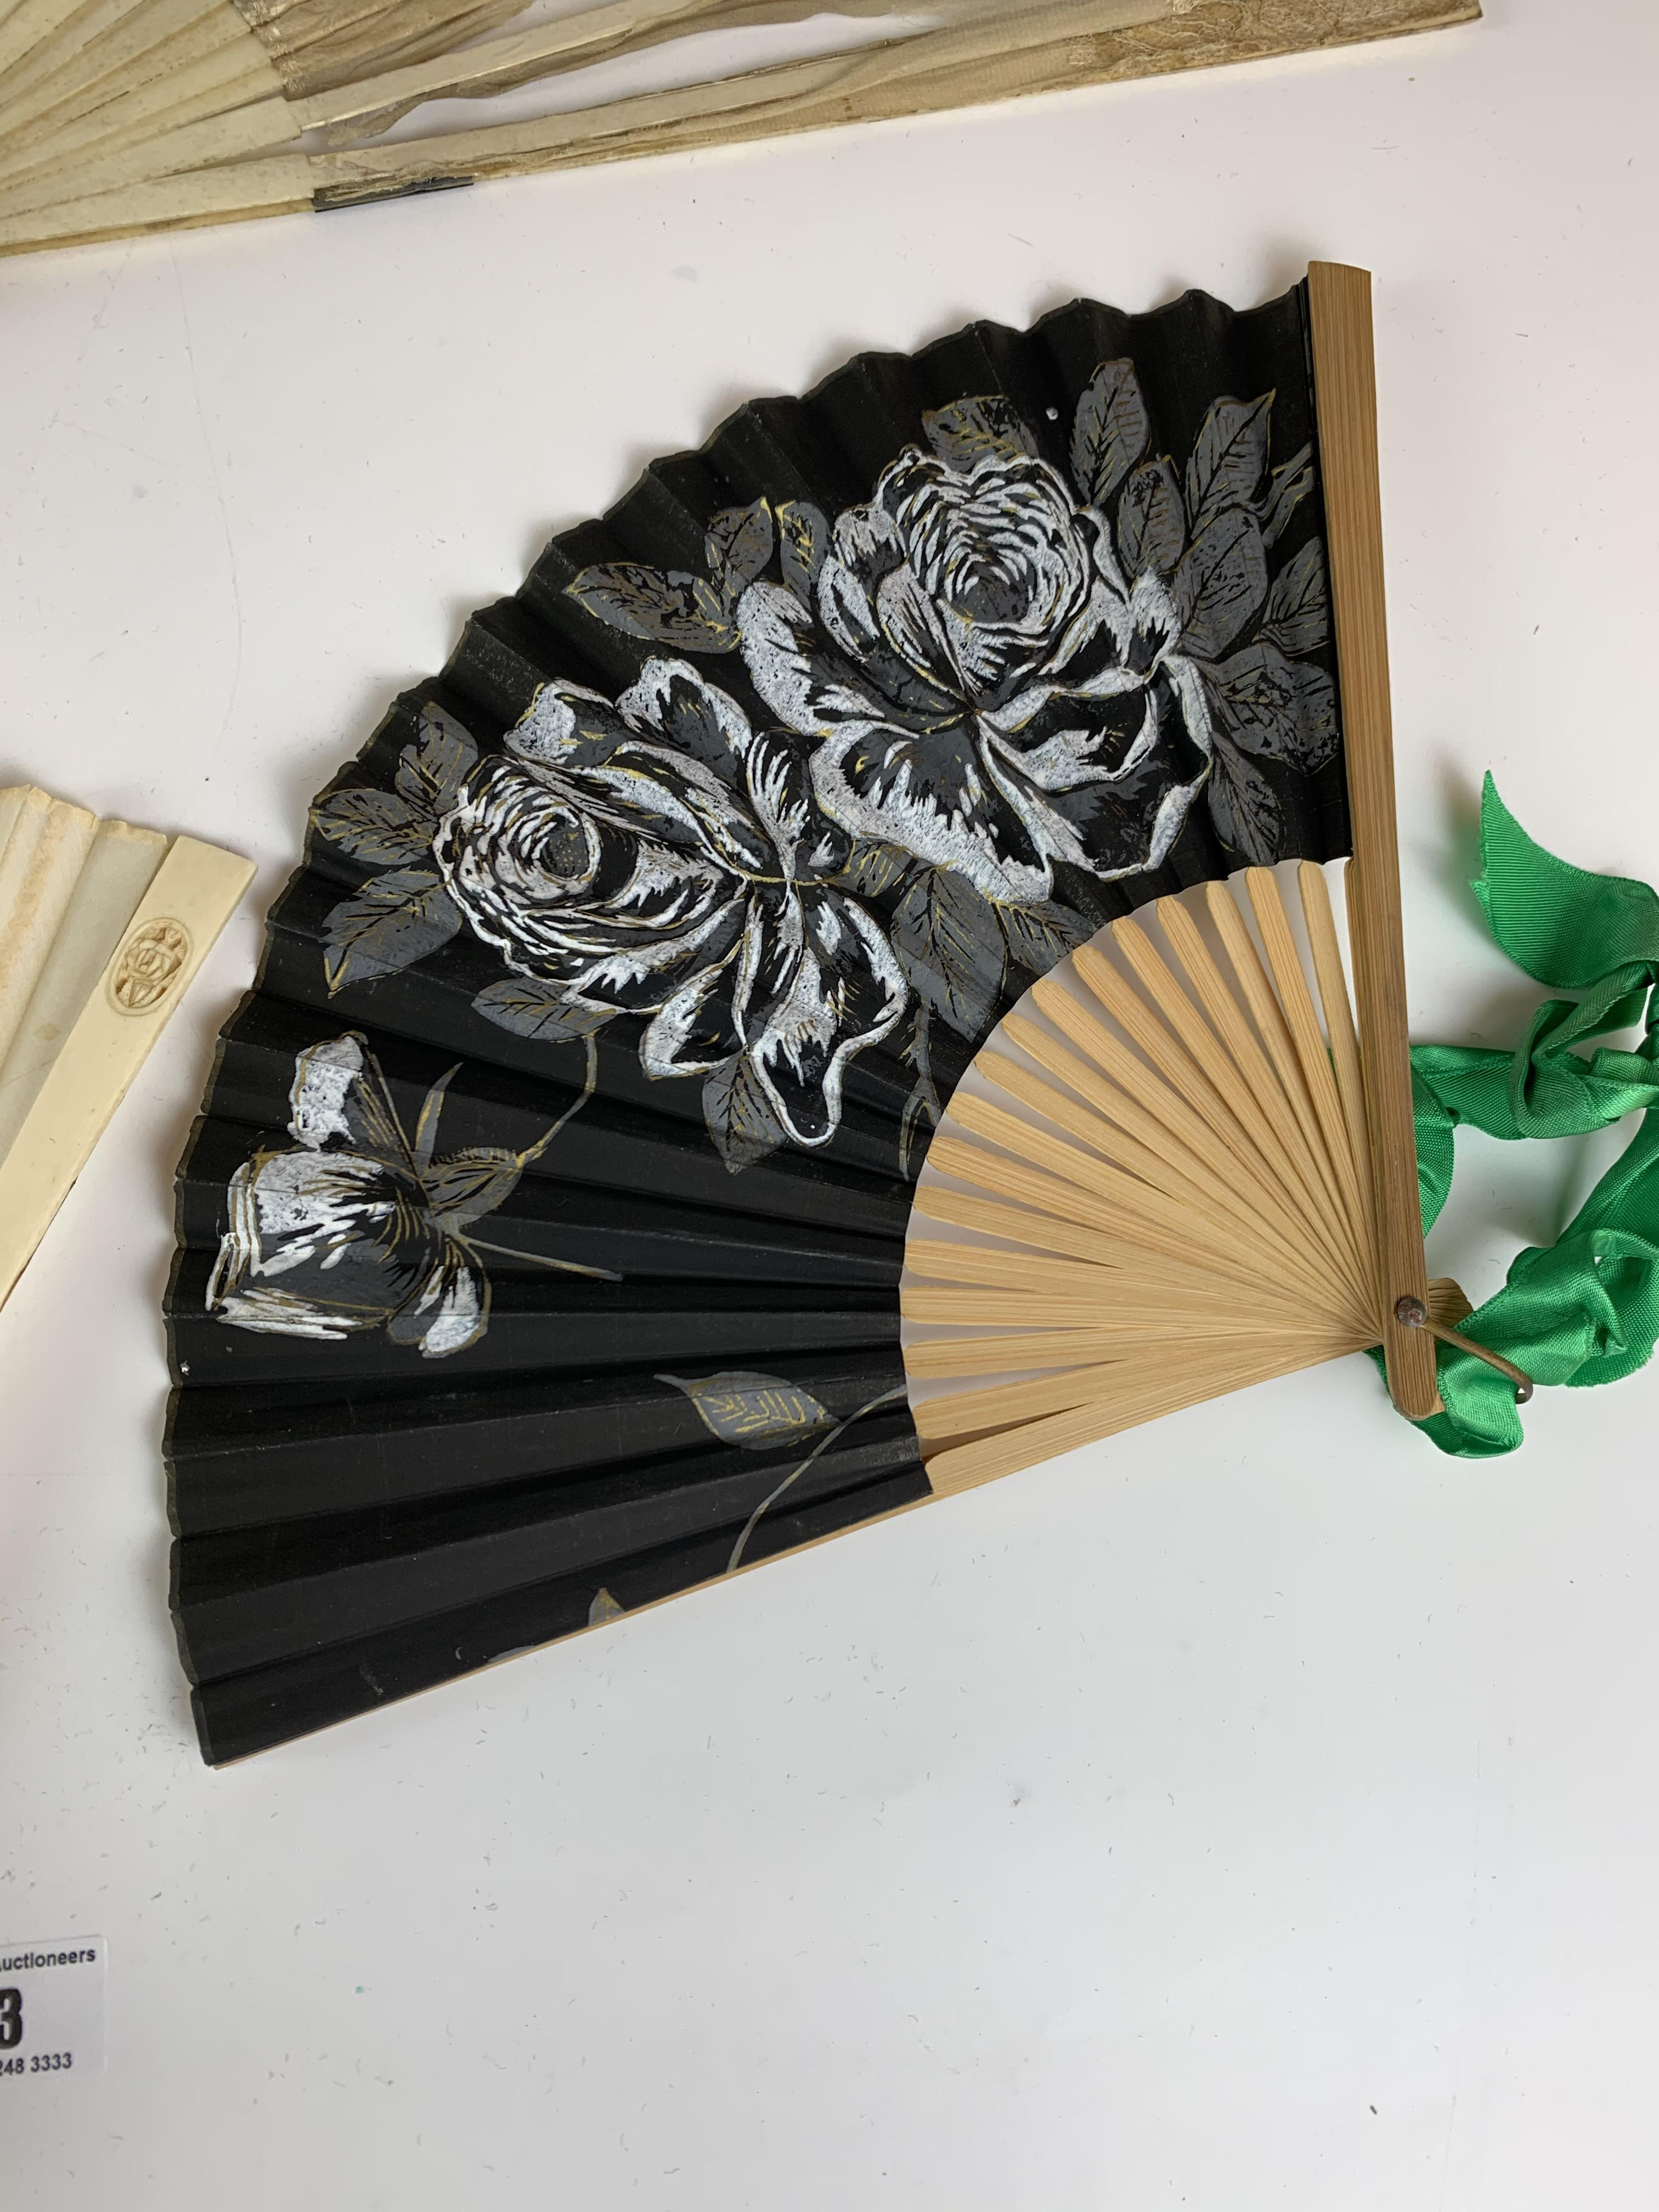 4 fans - Image 4 of 6